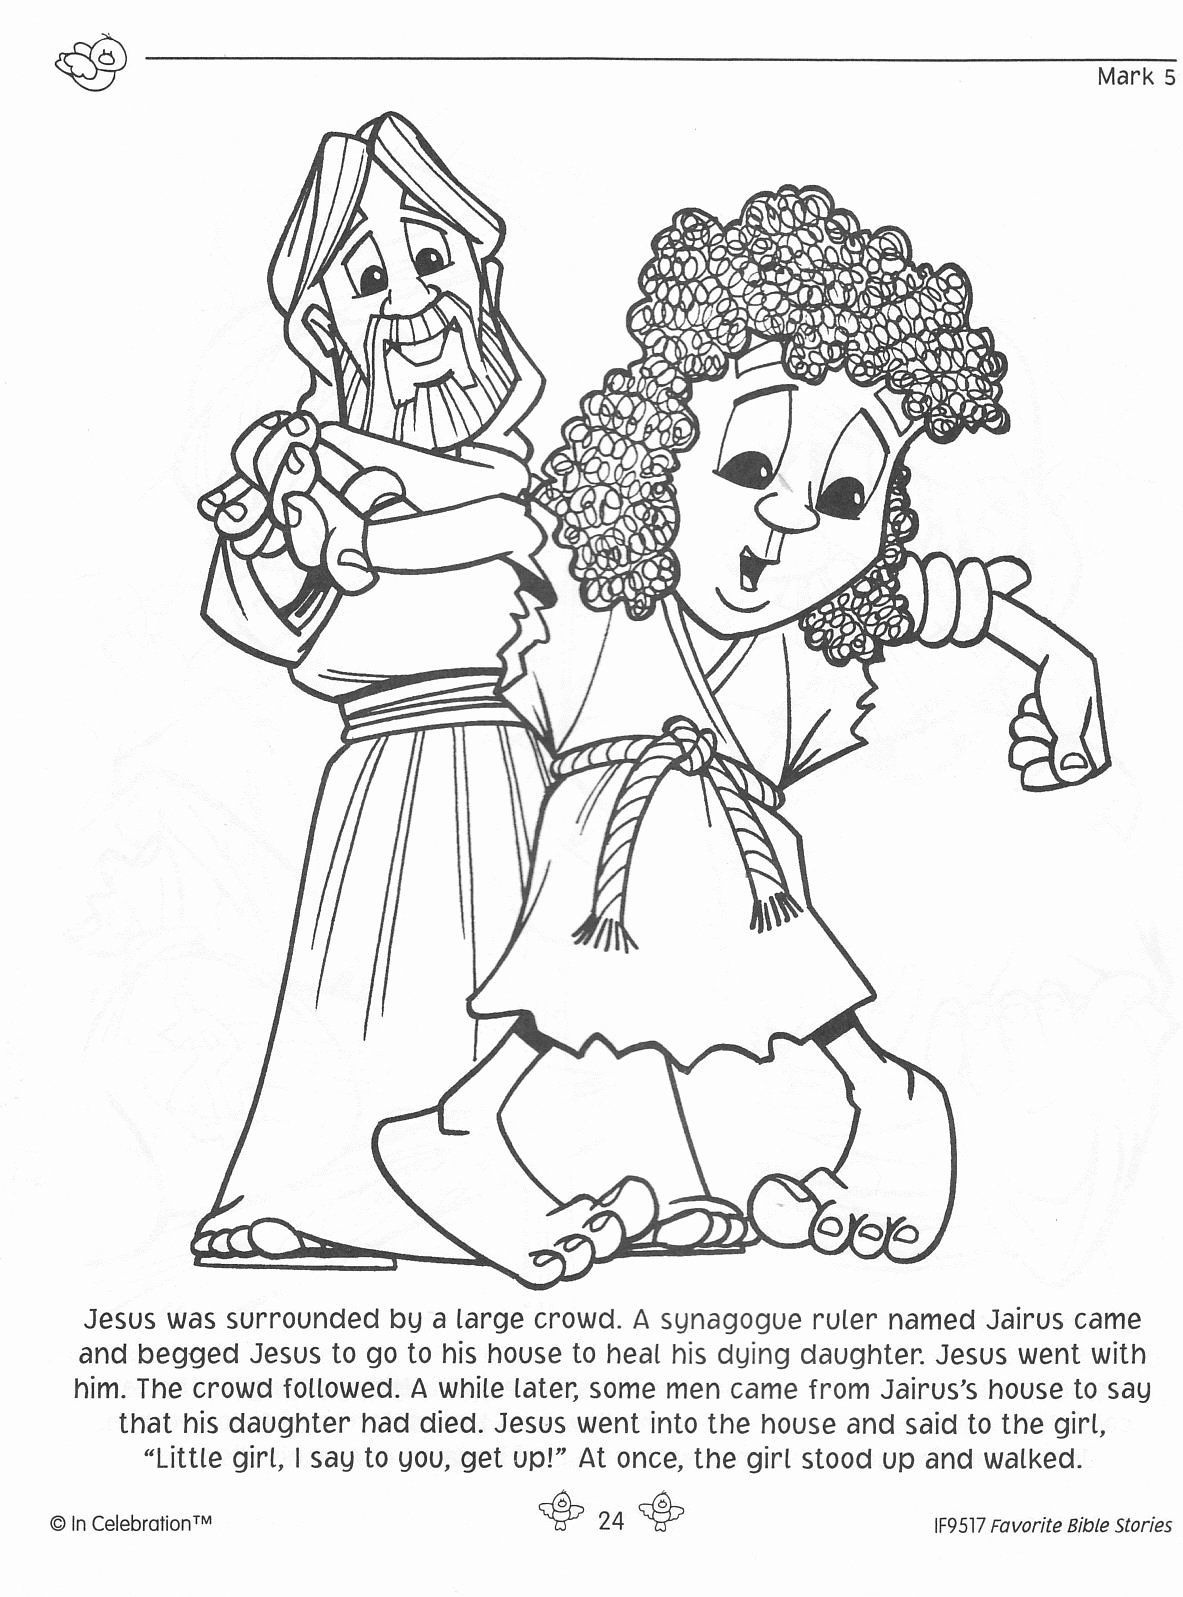 Jairus Daughter Coloring Page Lovely Jairus Daughter Coloring Page